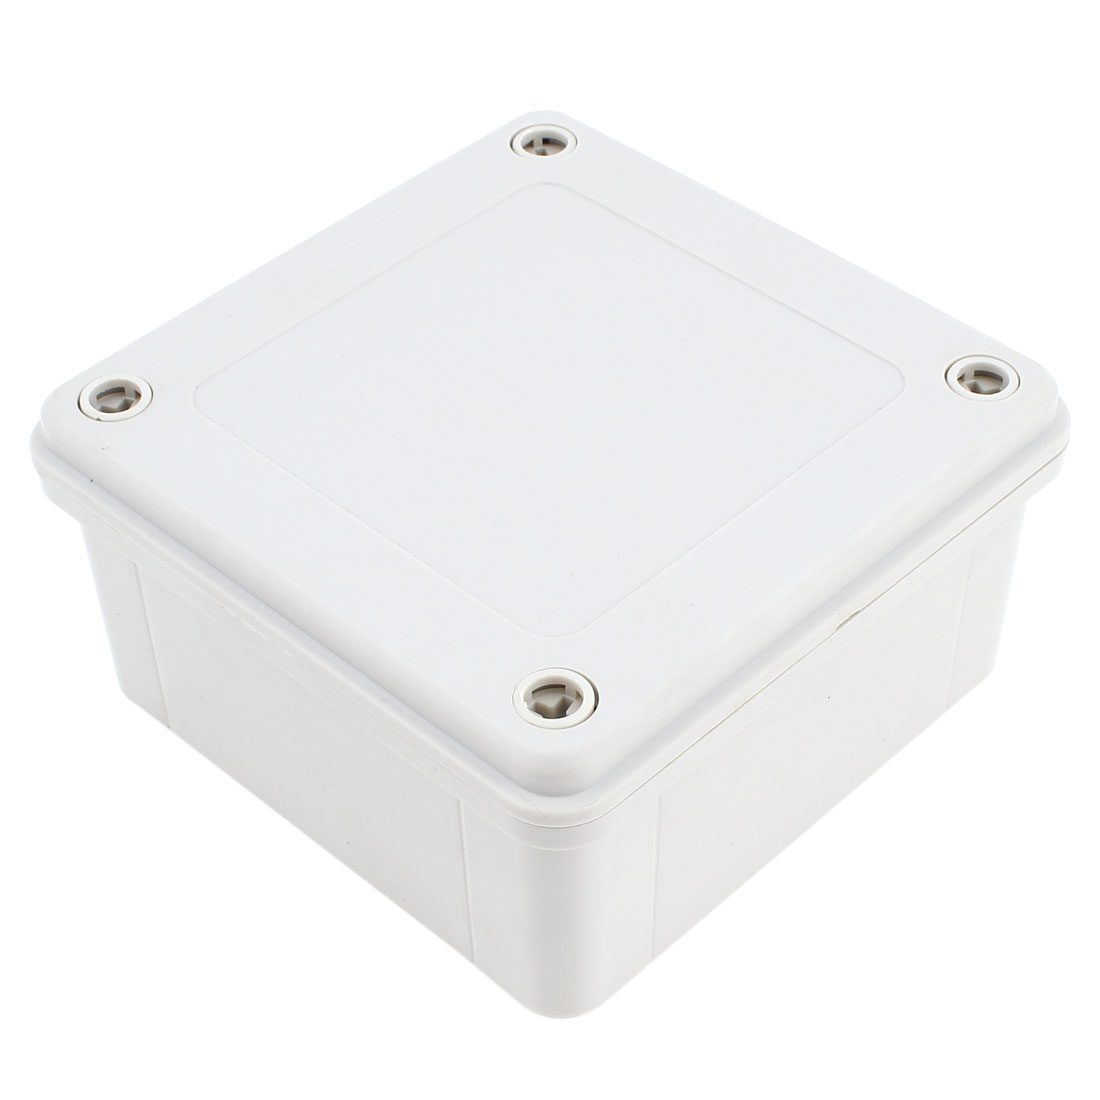 120mm x 120mm x 60mm Waterproof Plastic DIY Junction Box Power Protection Case